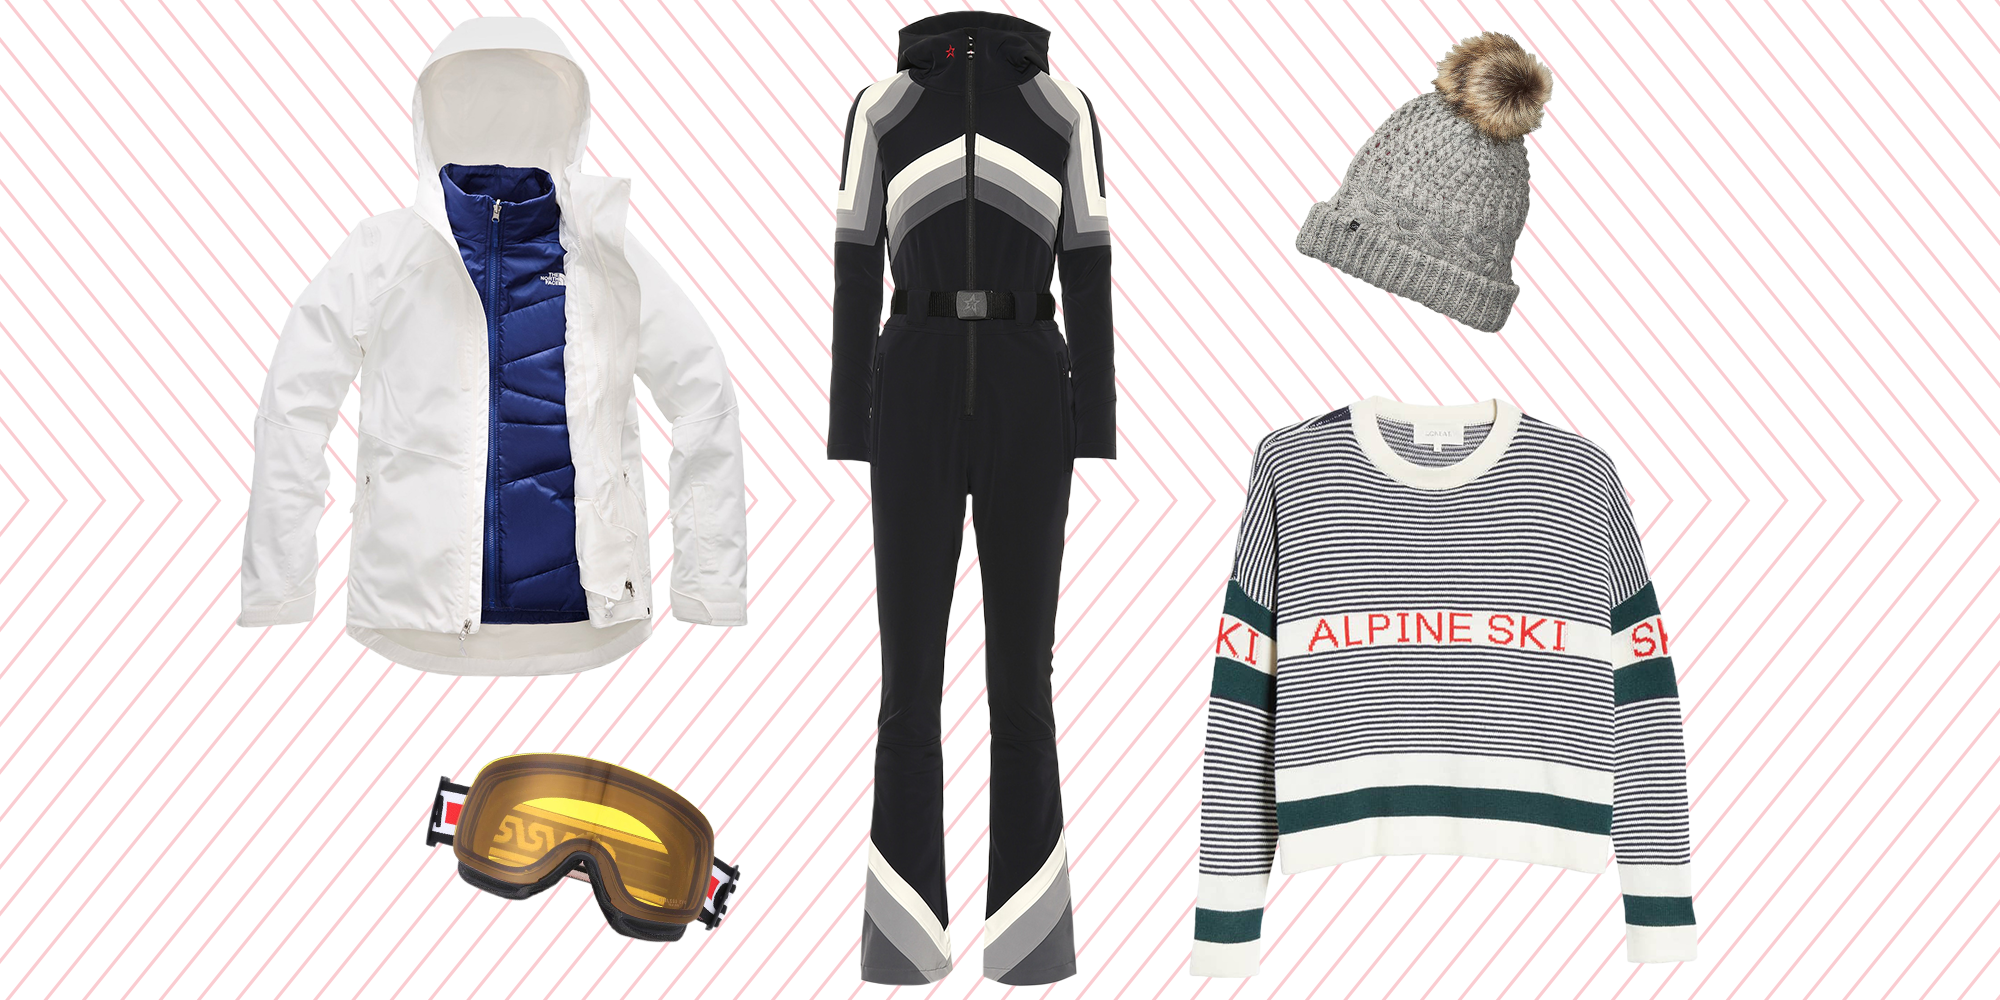 What to Wear When You Go Skiing, So You Stay Warm and Dry